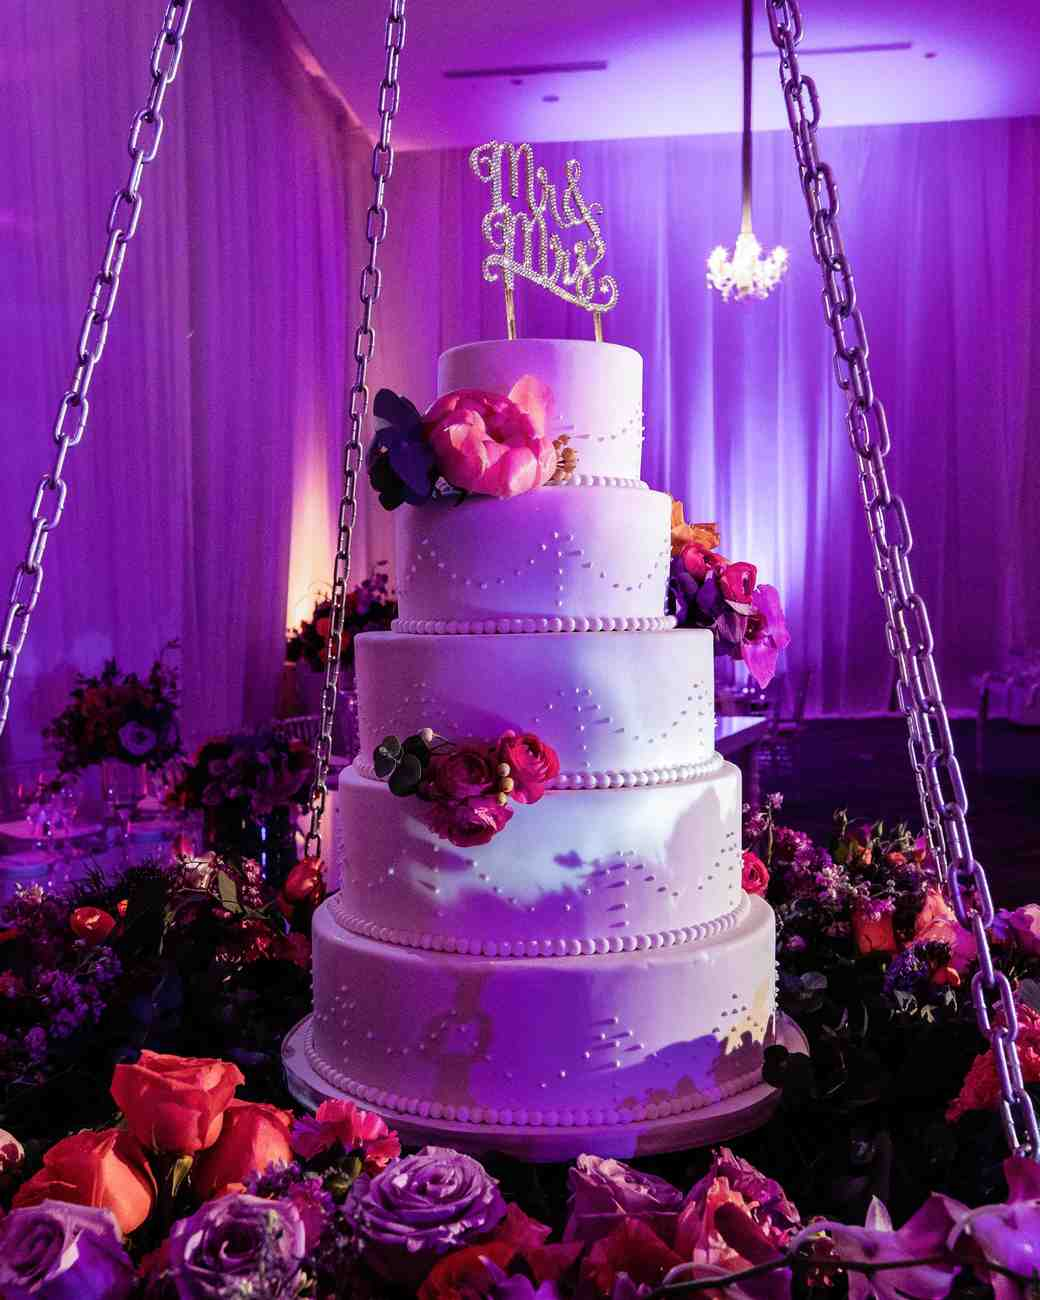 hanging five tier wedding cake rose base pink lighting